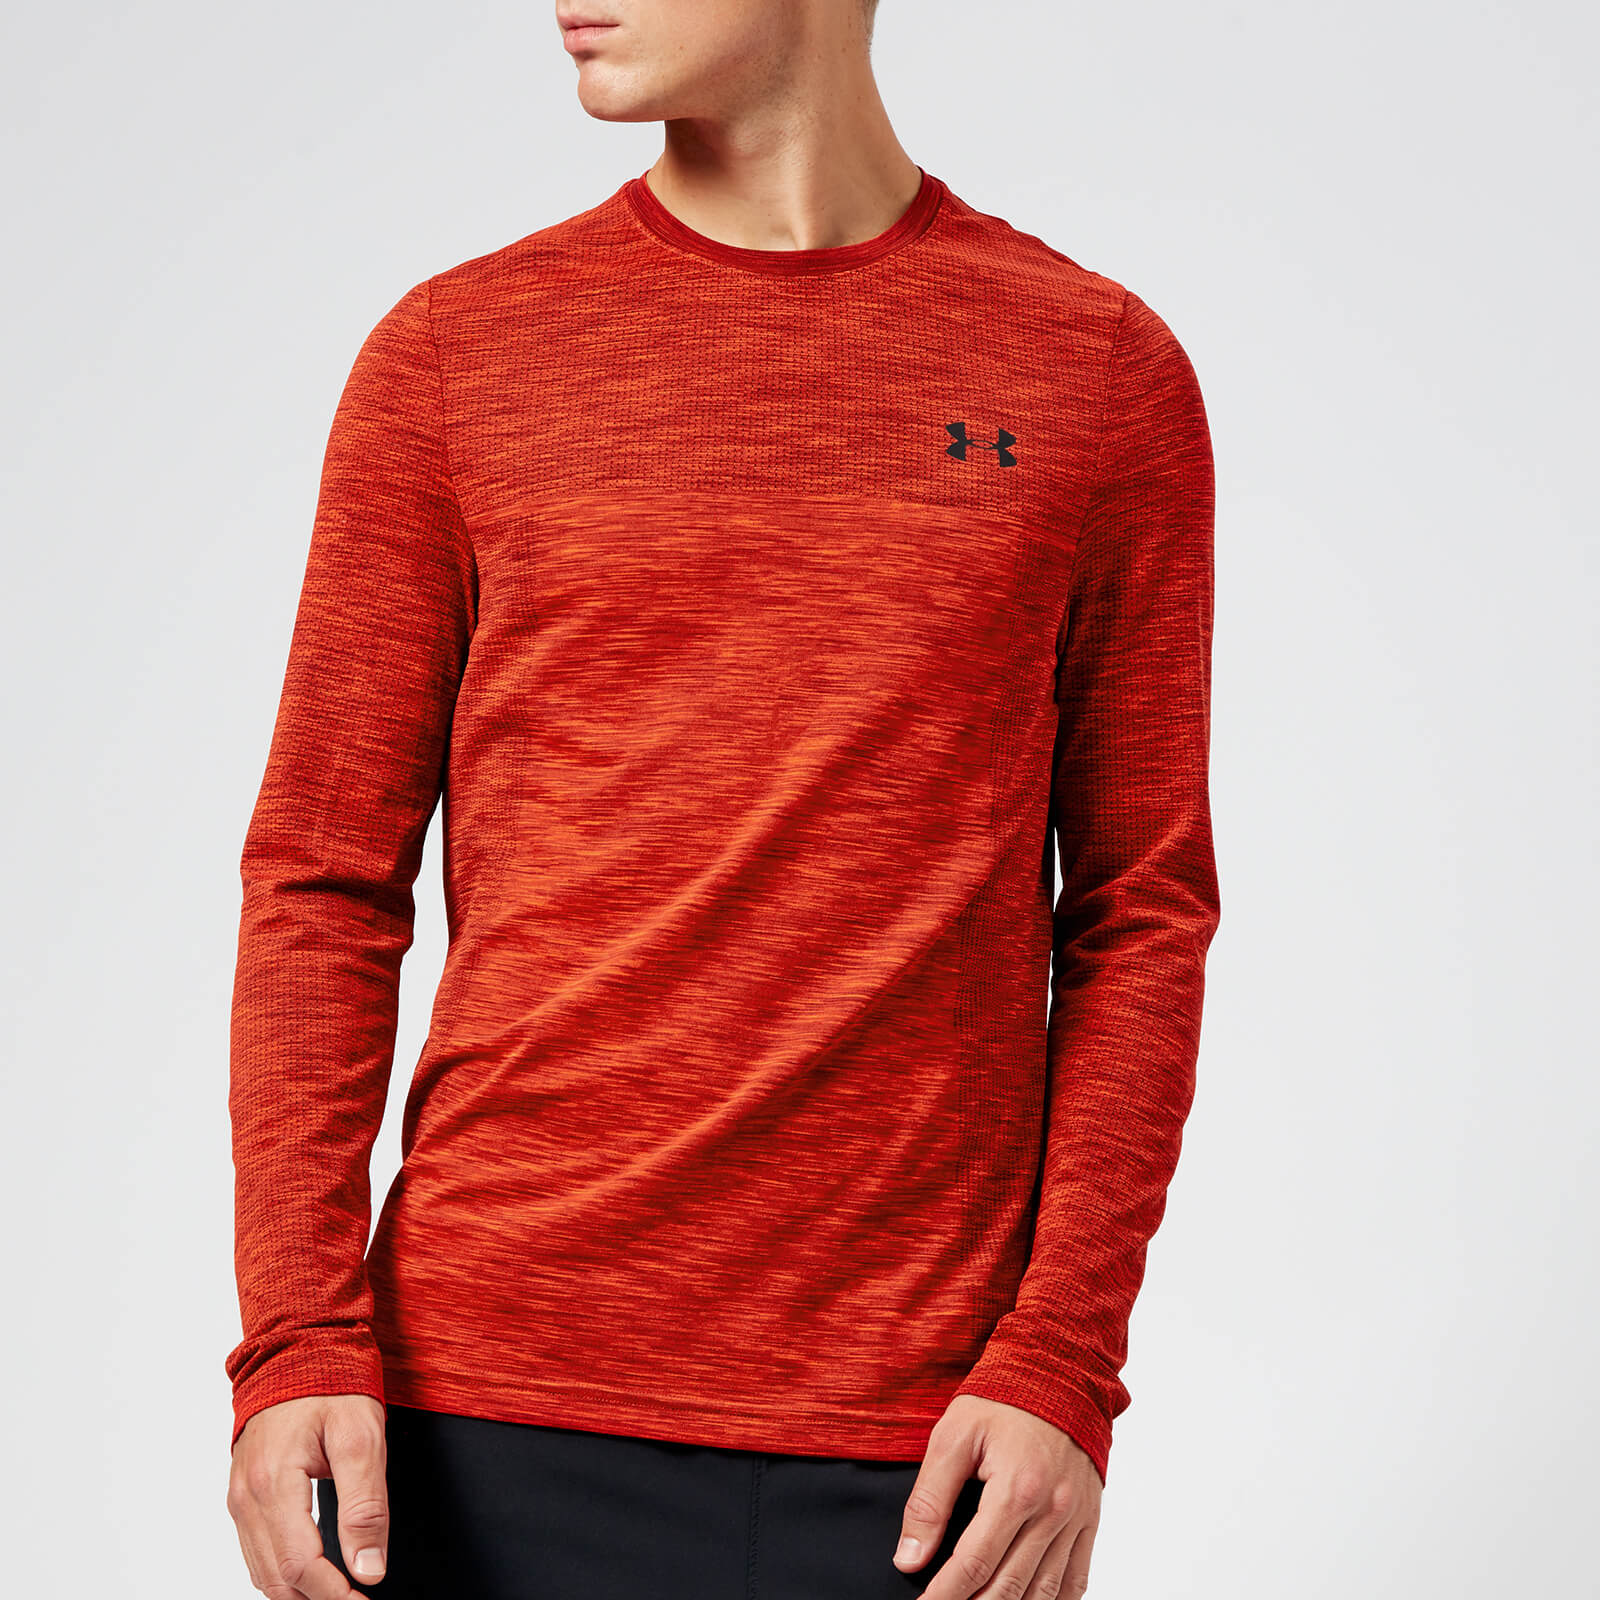 6c7666436 Under Armour Men's Vanish Seamless Long Sleeve Top - Radio Red Sports &  Leisure | TheHut.com